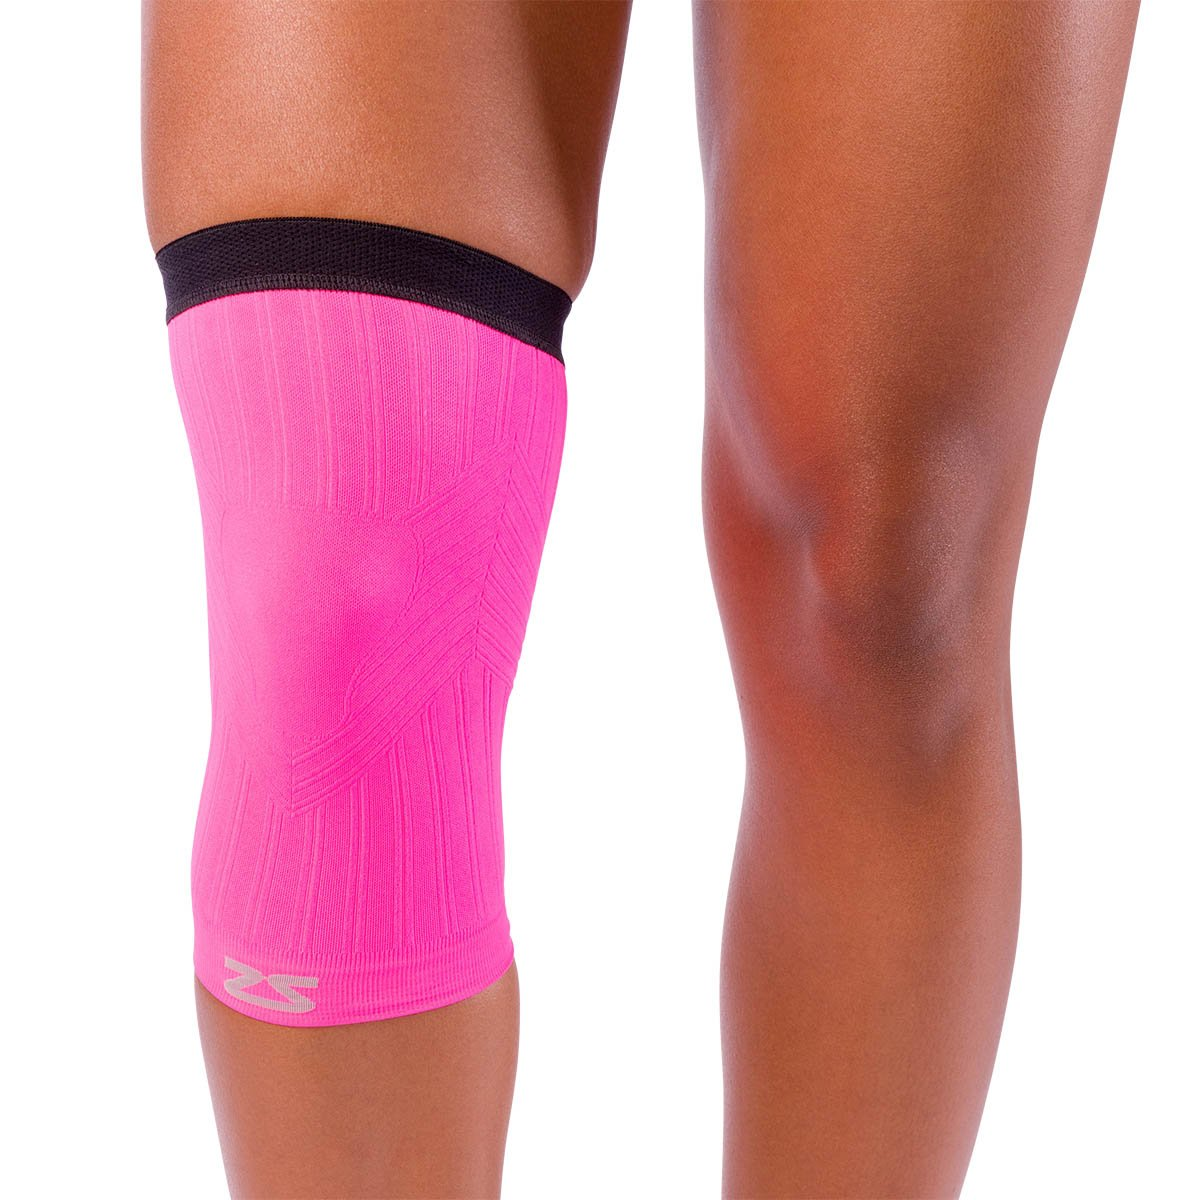 5c4f06e828 Zensah Neon Pink Compression Knee Sleeve -- Free Shipping -- Ithaca Sports